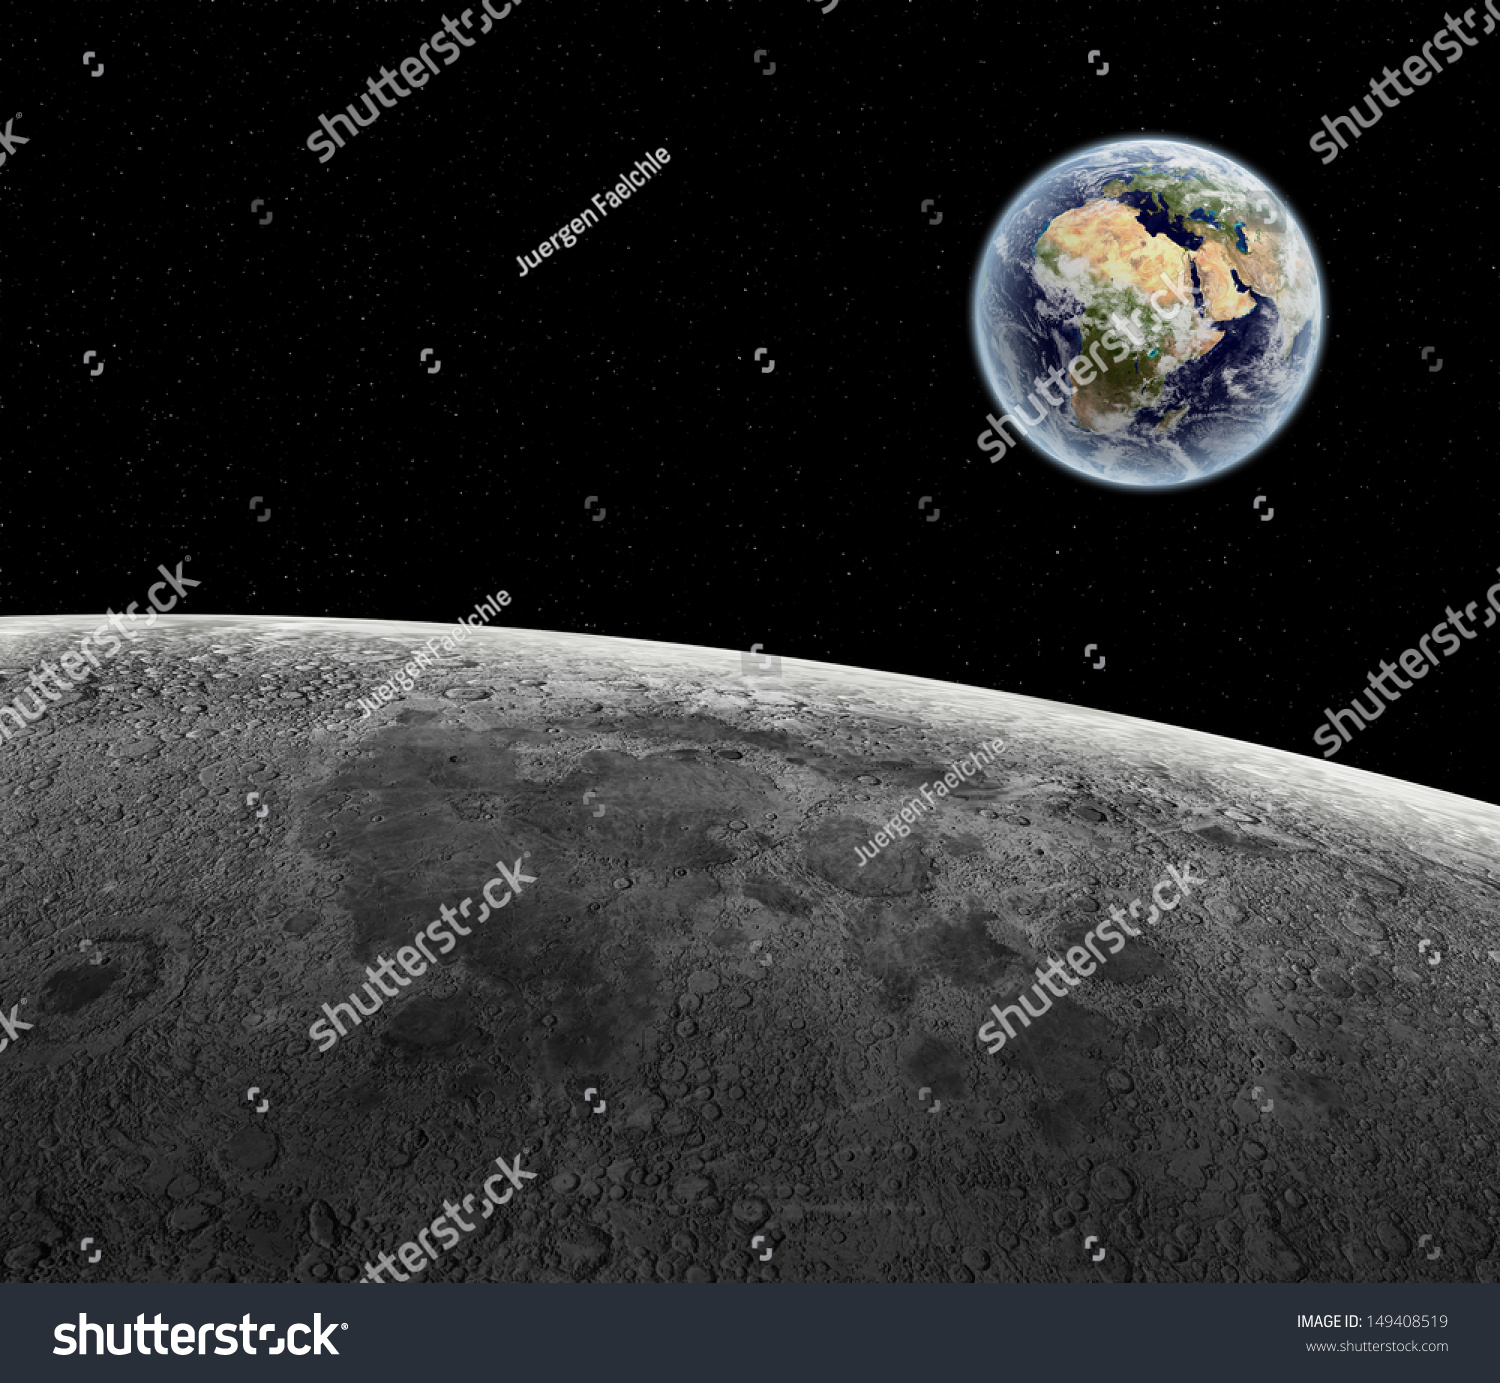 surface of moon as seen from earth - photo #15